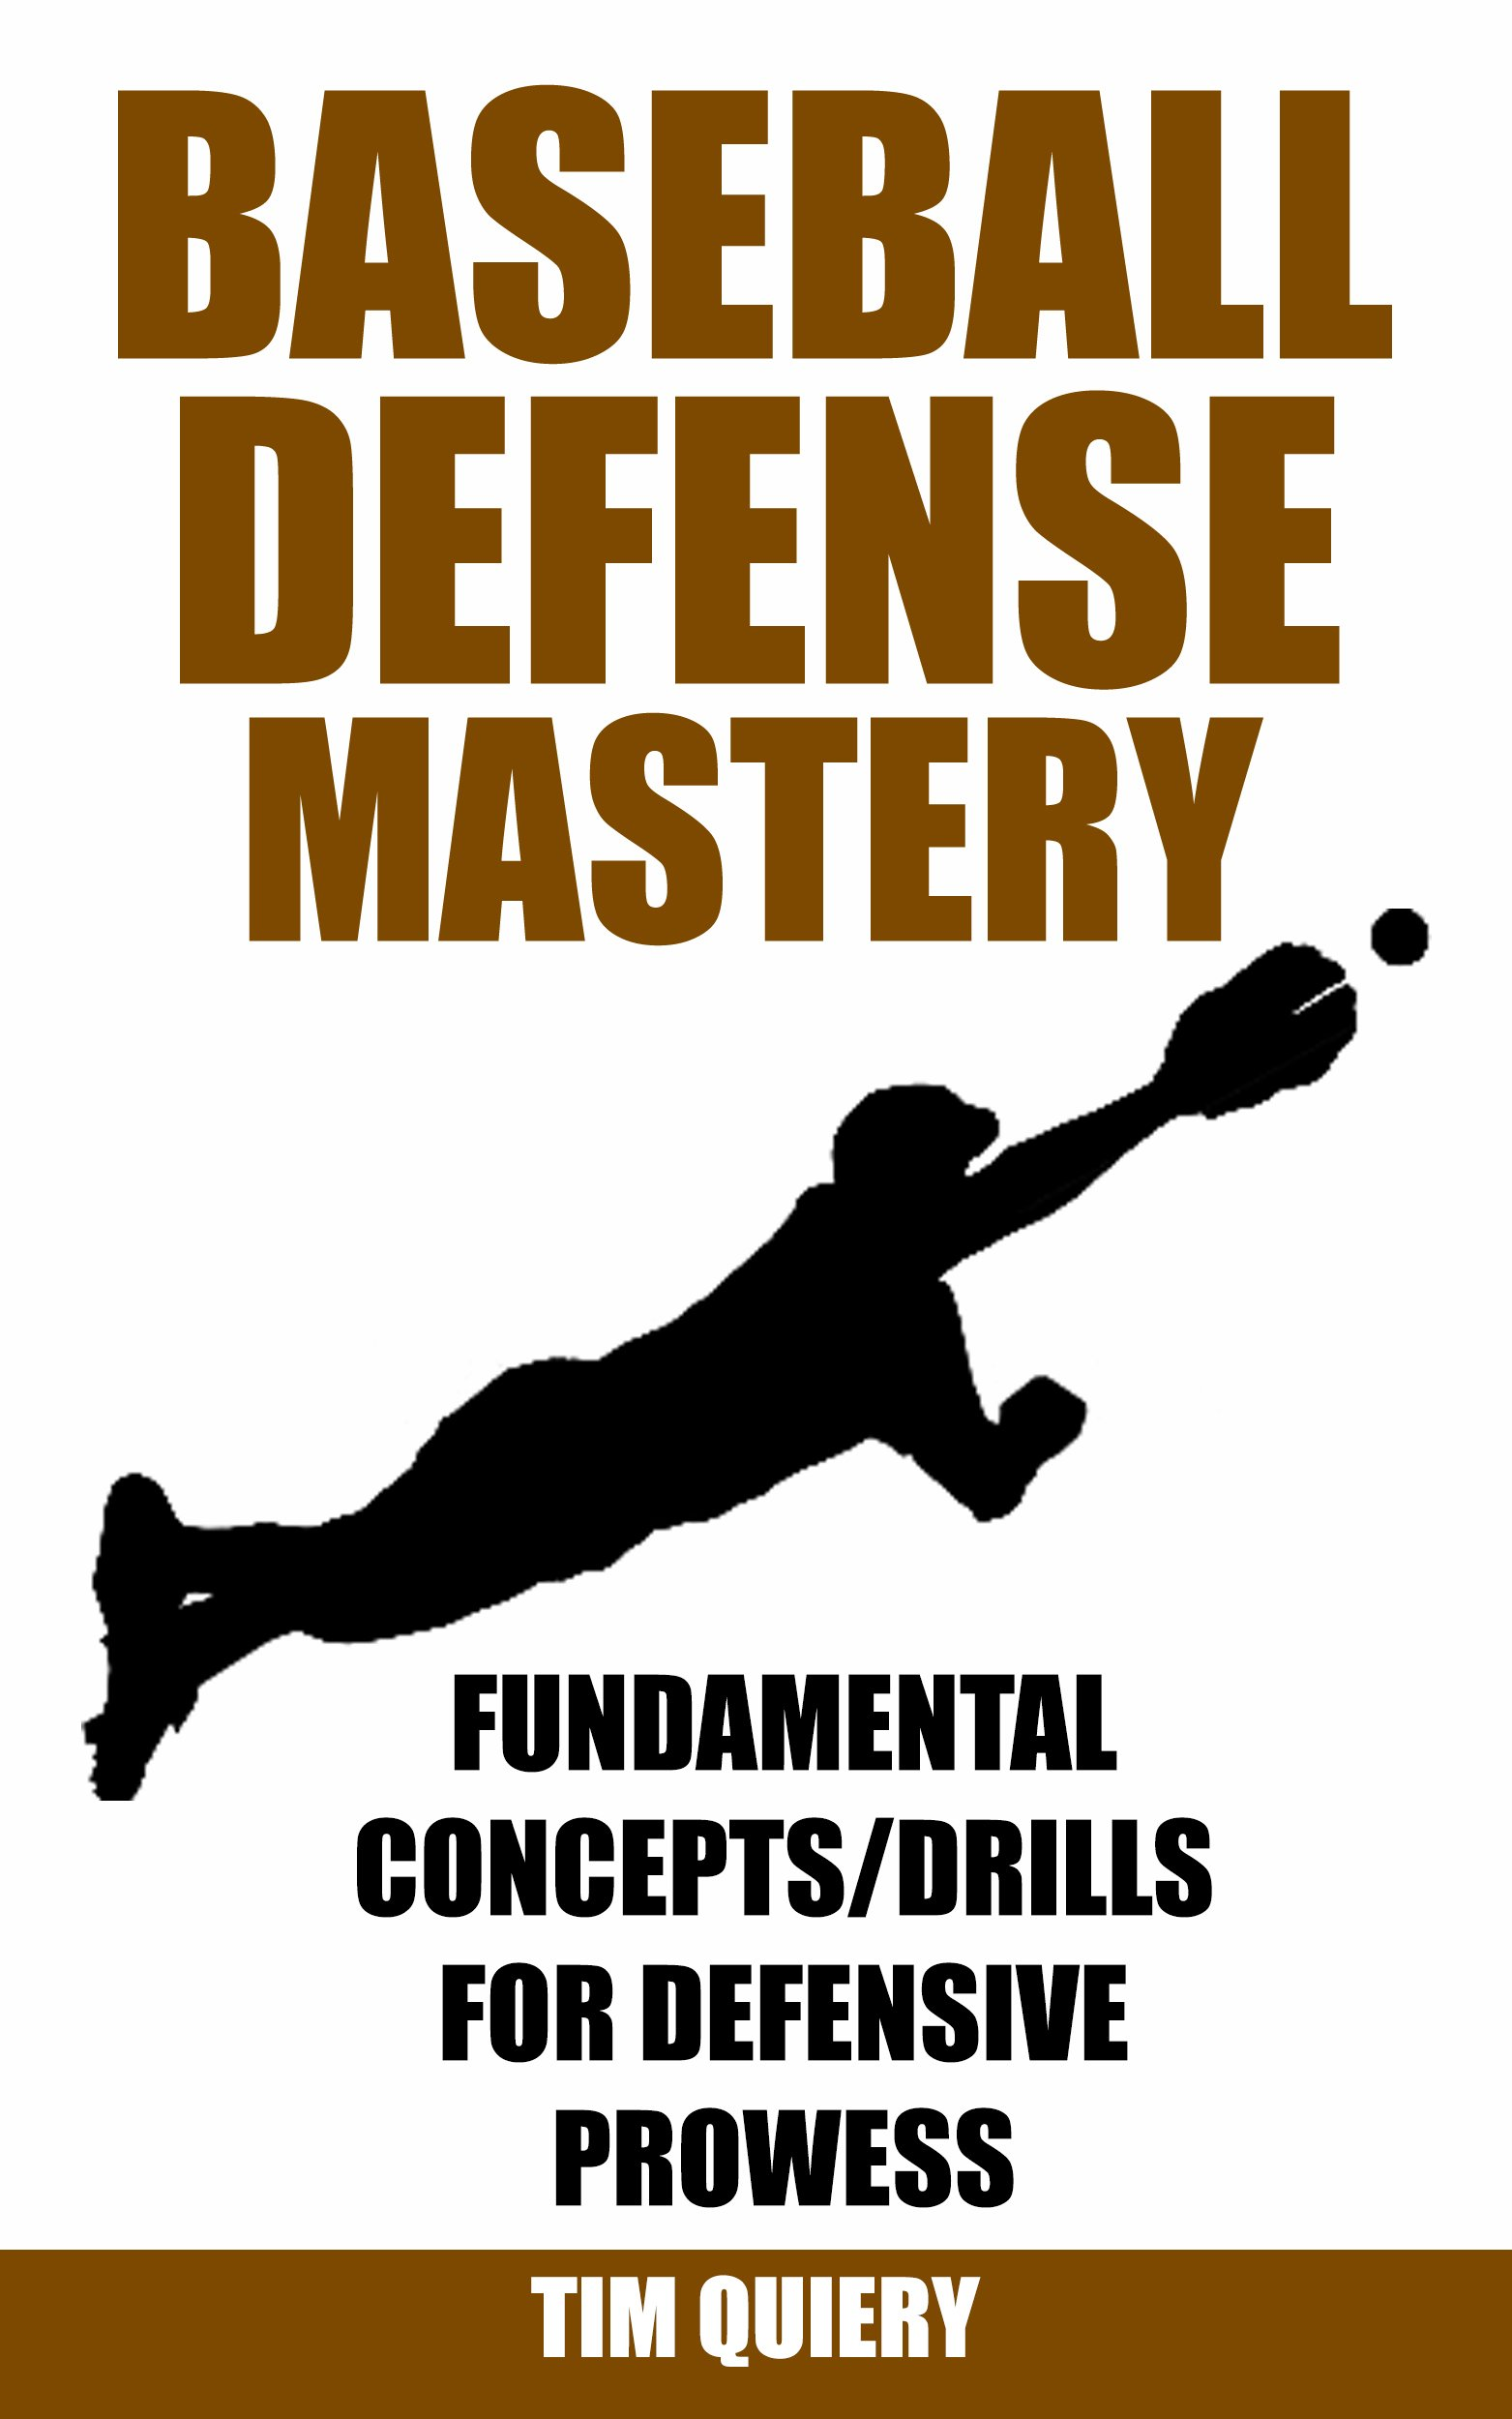 Image OfBaseball Defense Mastery: Fundamentals, Concepts & Drills For Defensive Prowess (Baseball Defense, Baseball Book, Baseball...